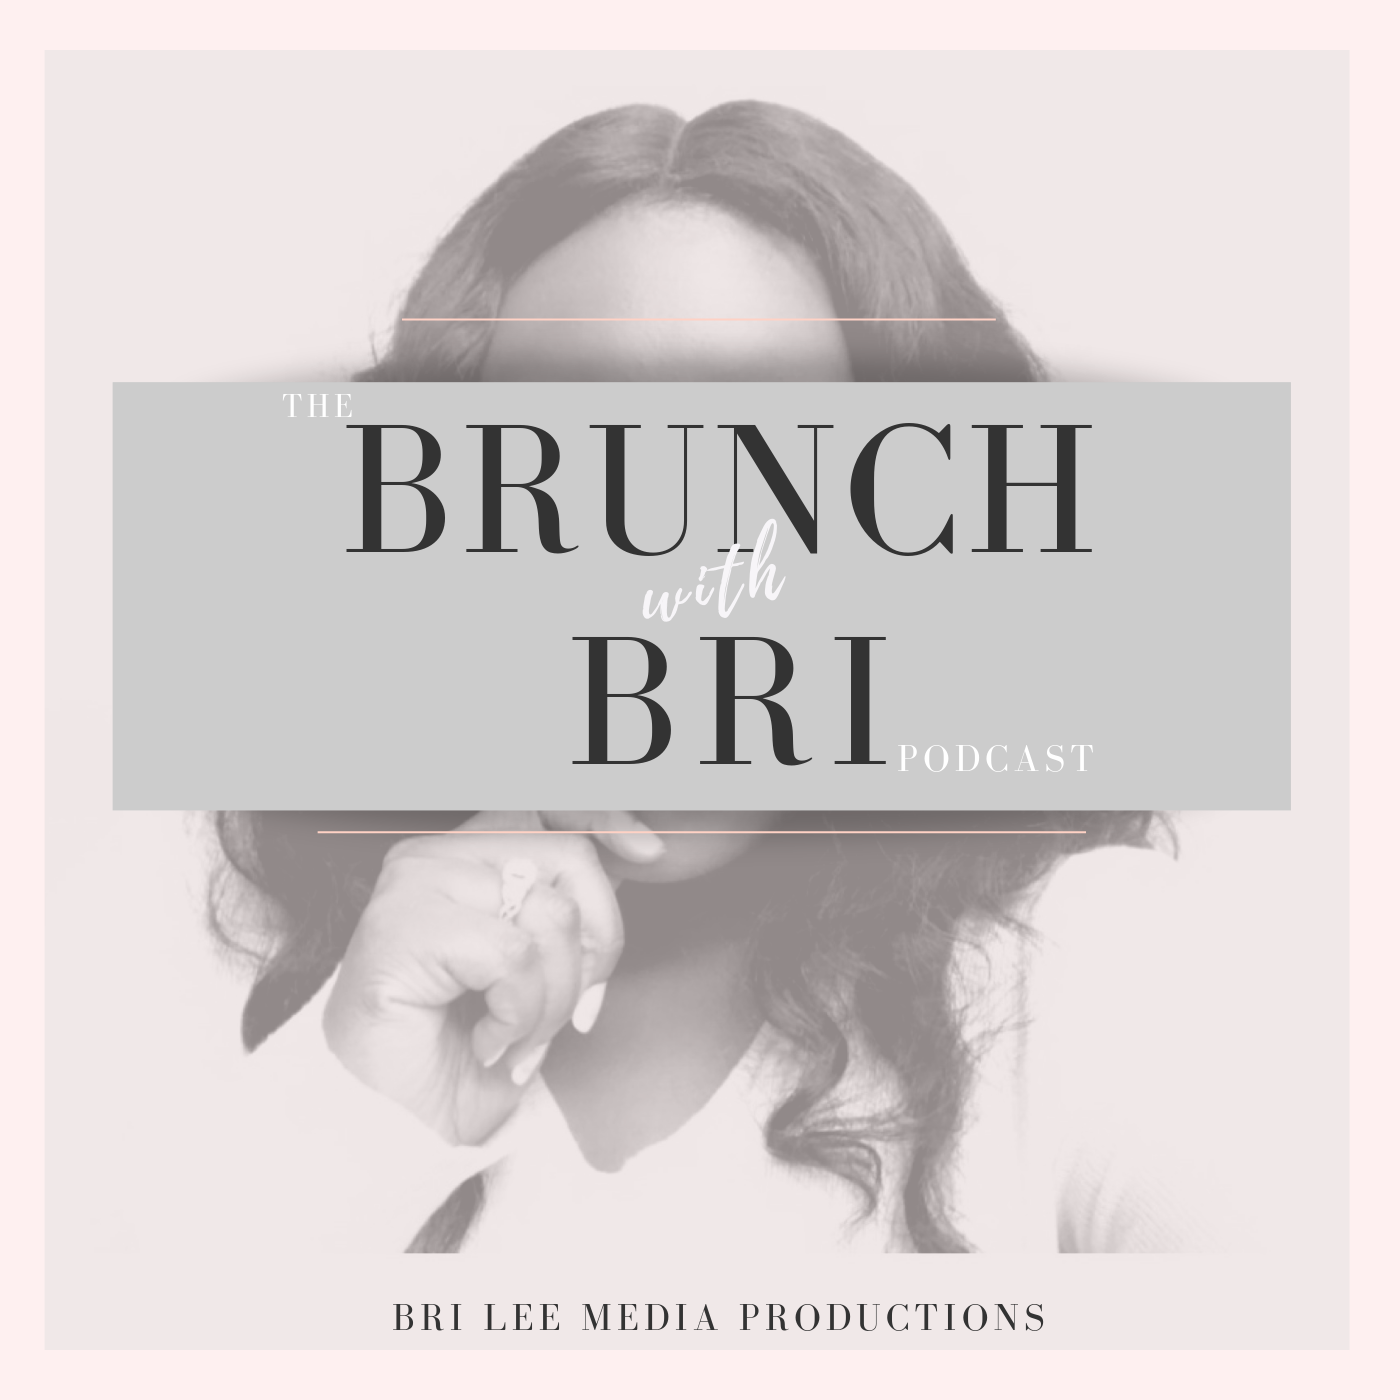 Brunch with Bri Podcast